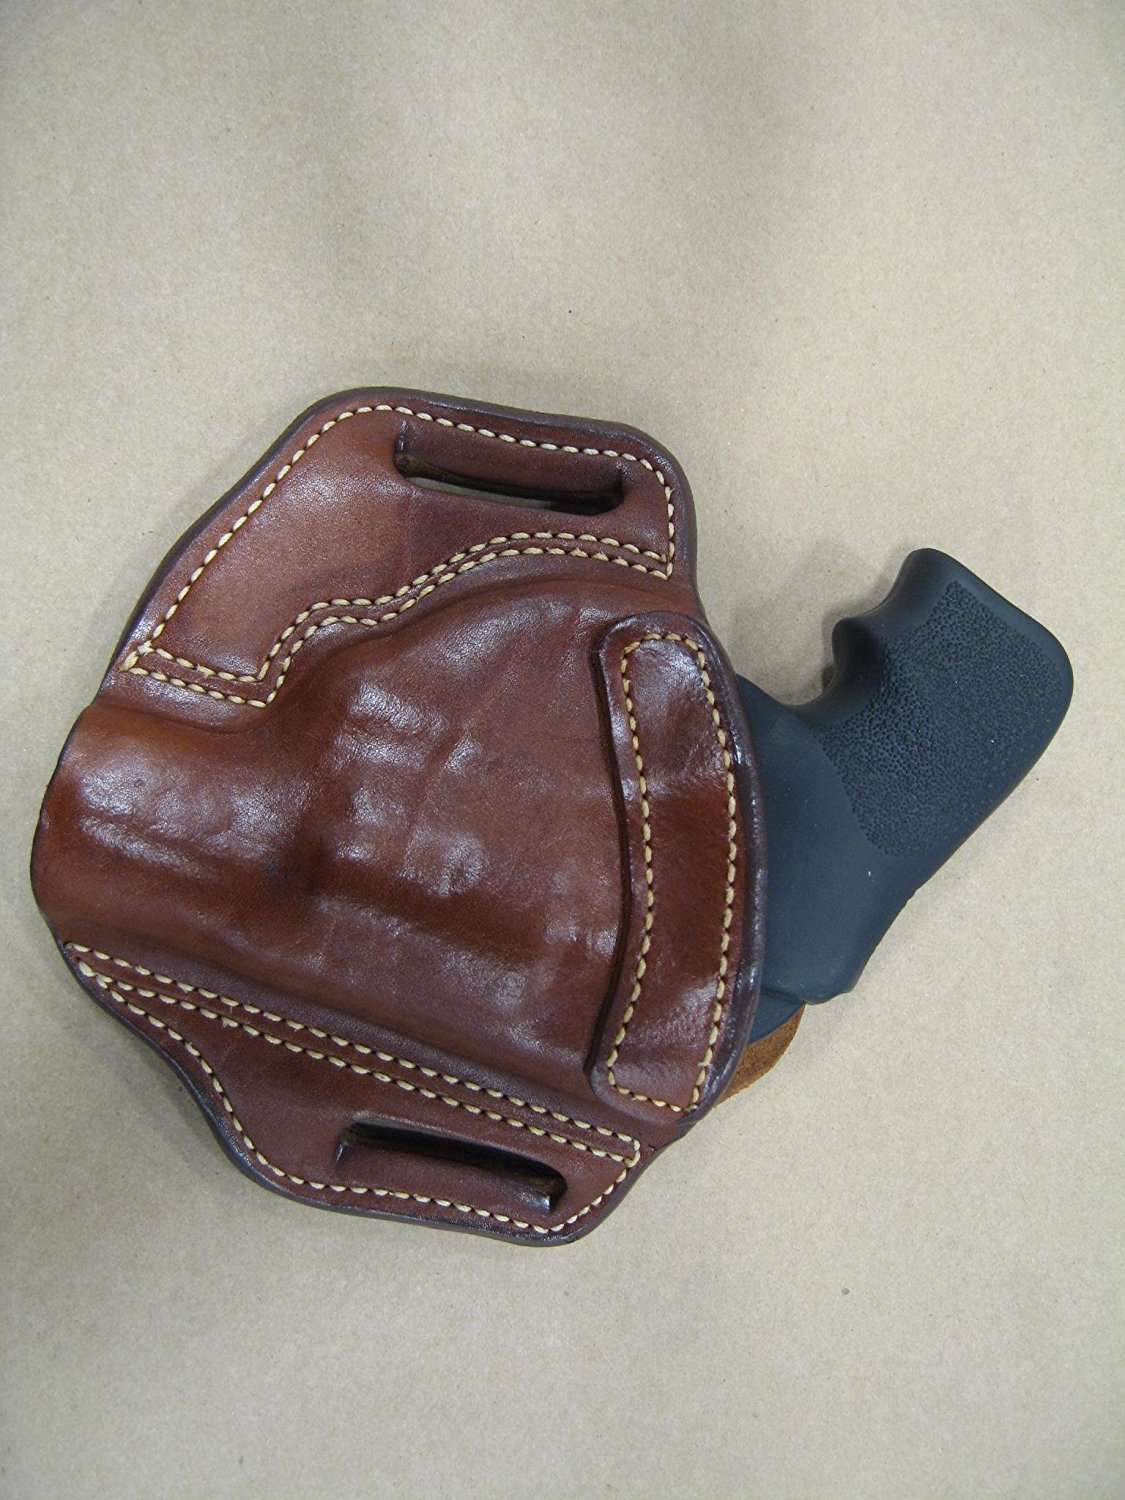 Cheap Holster Lcr, find Holster Lcr deals on line at Alibaba com